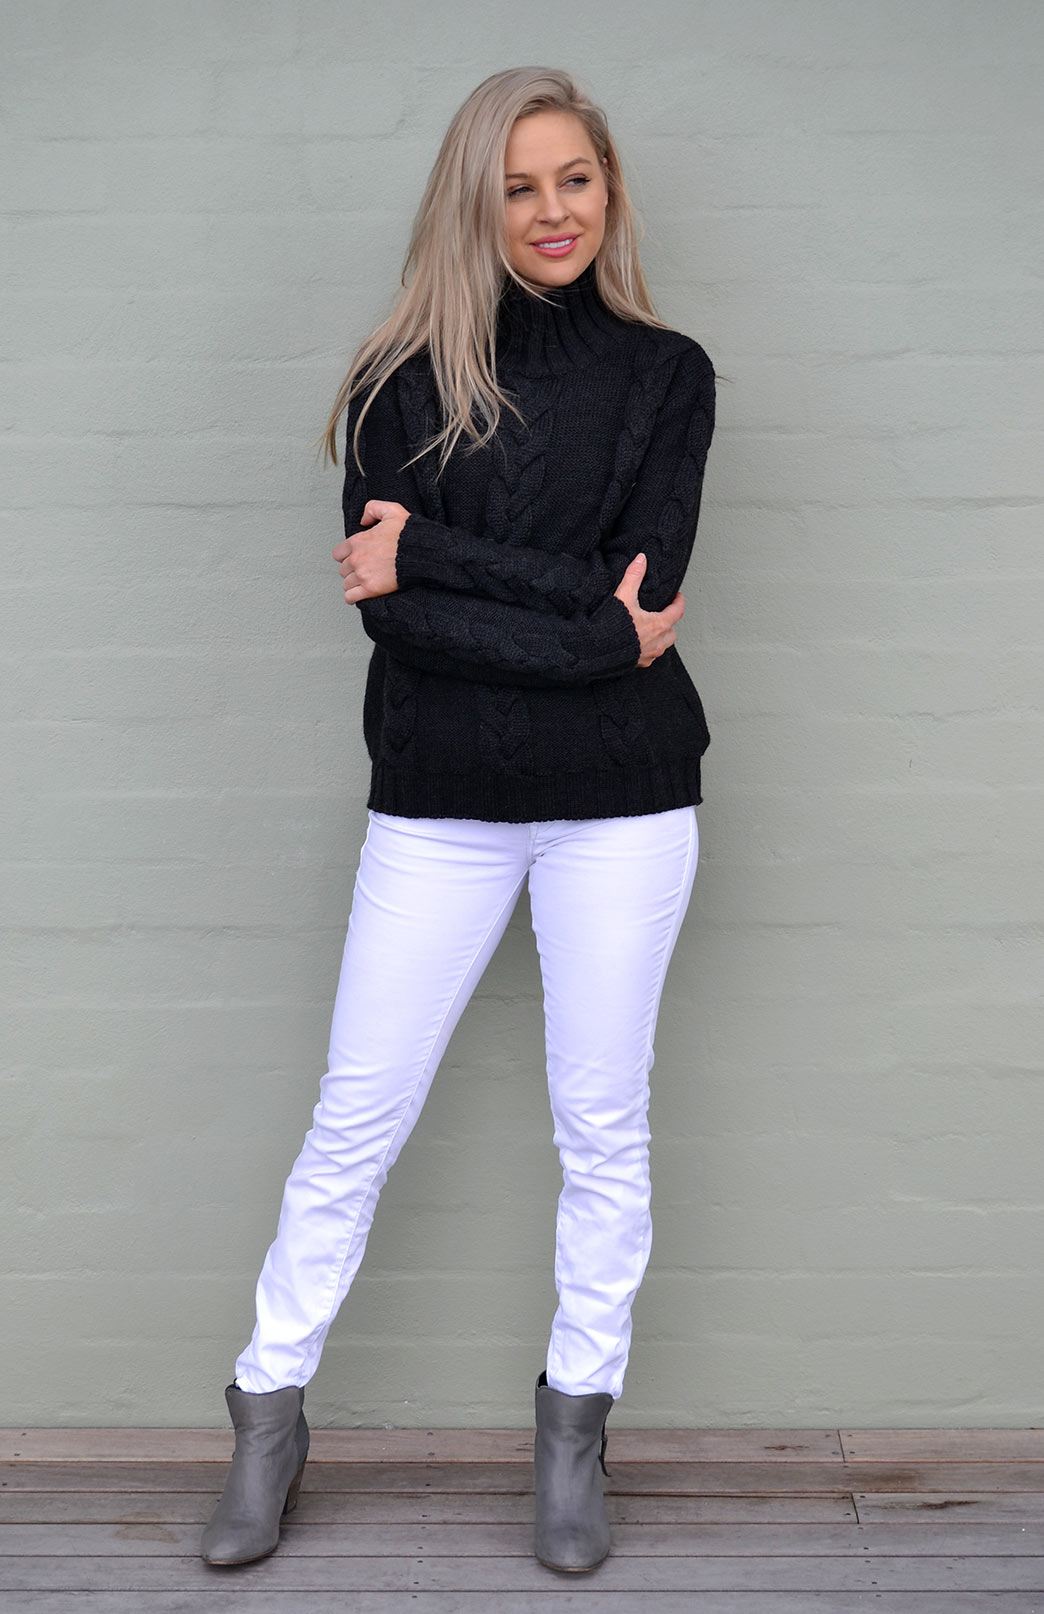 Our Model wearing Cable-knit Jumper in charcoal